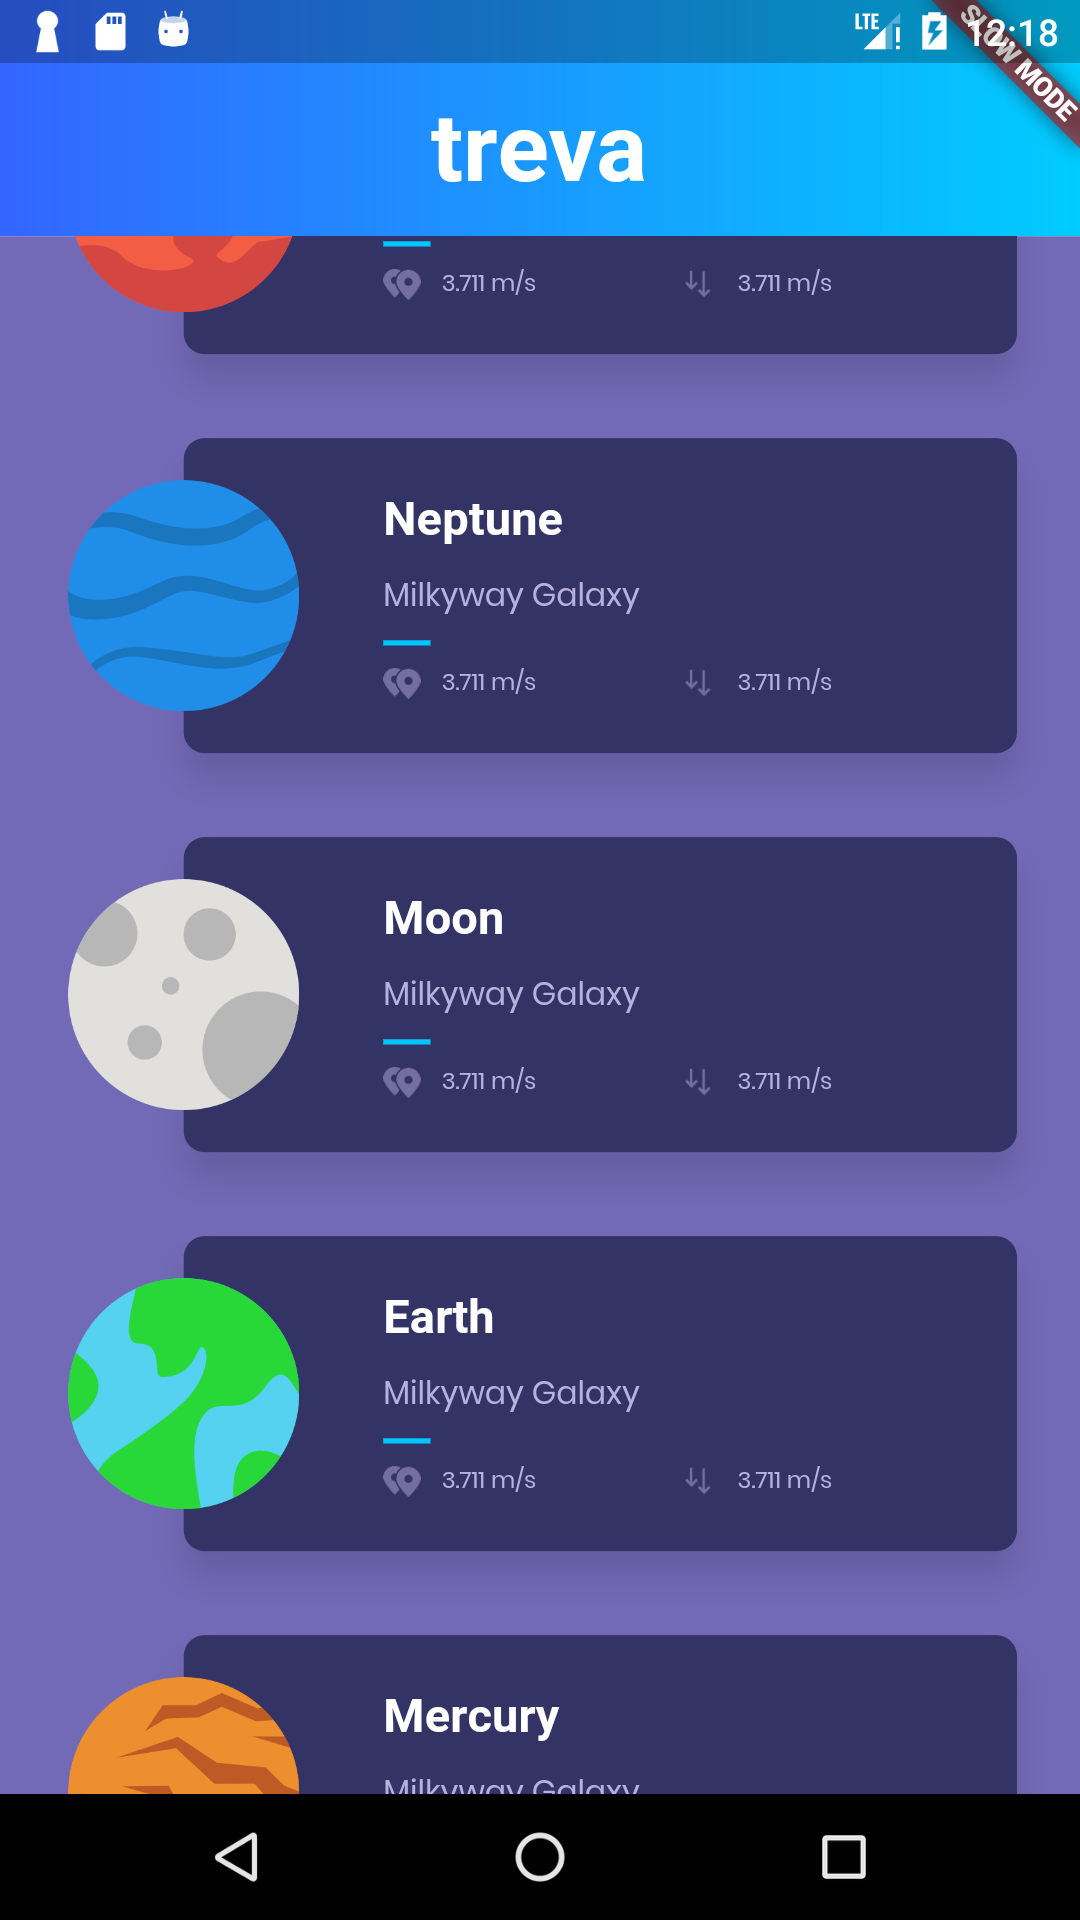 Planets-Flutter: creating a list of planets